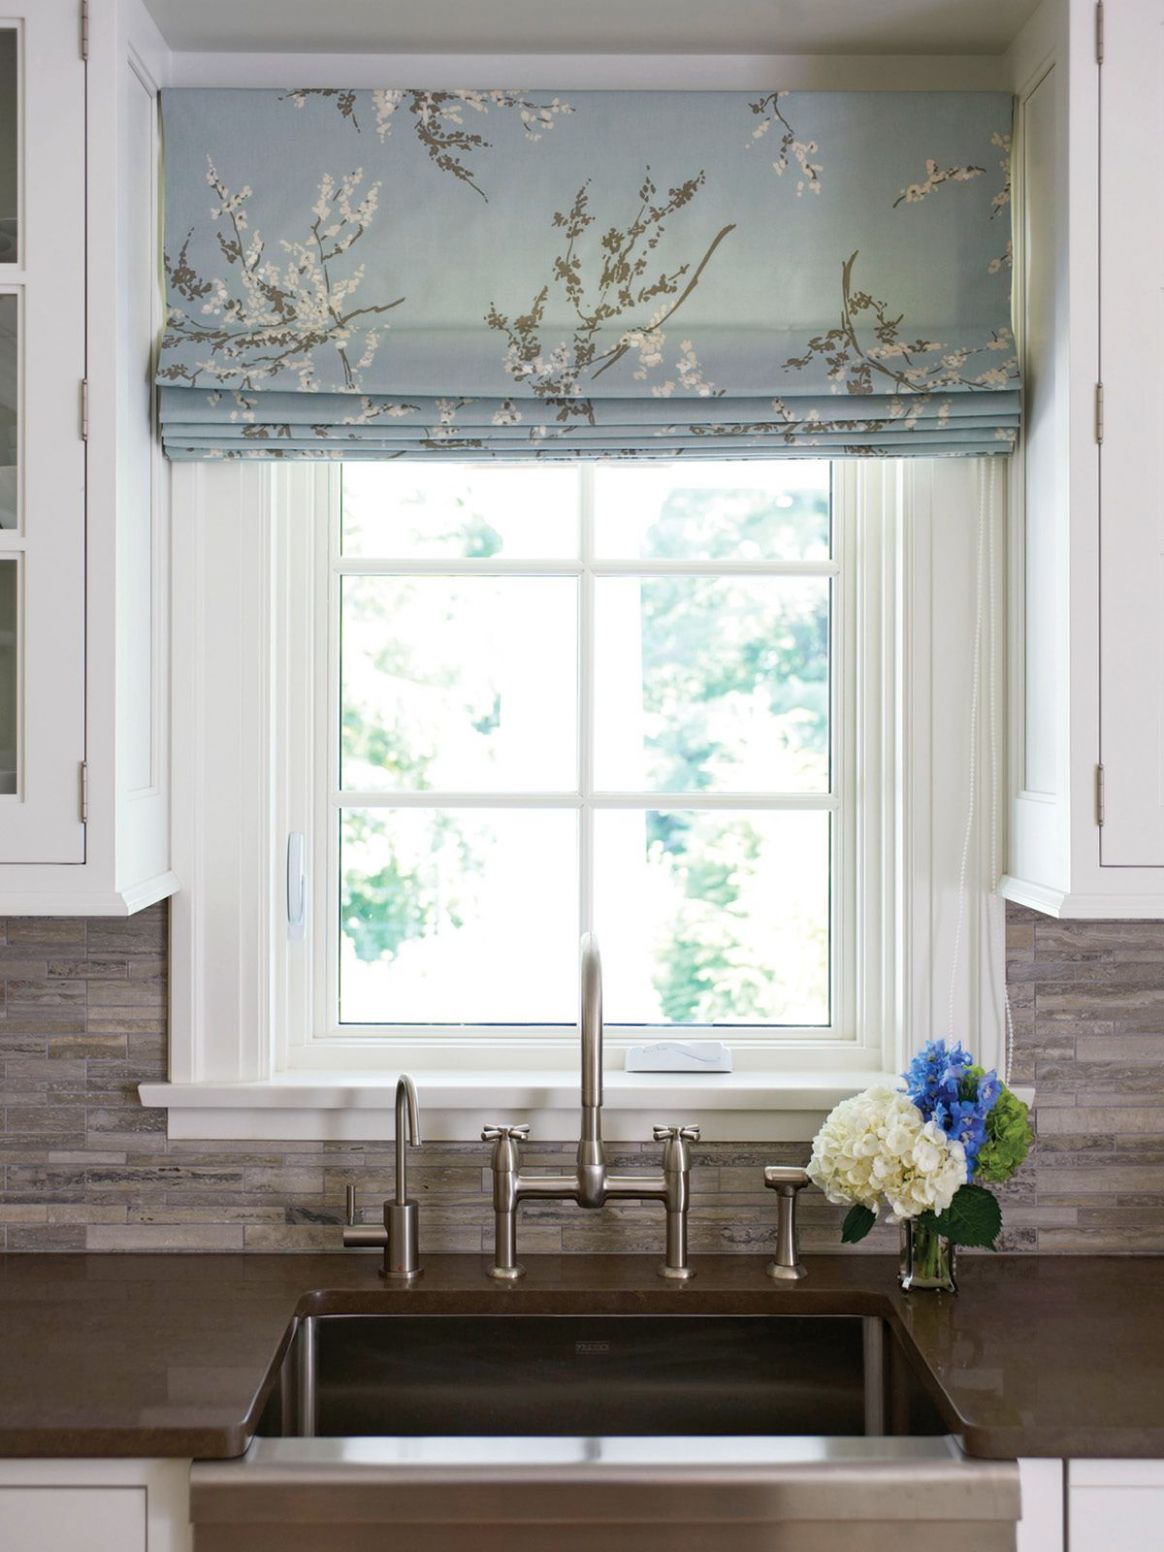 Like the idea of using a printed fabric for the blinds to add ..